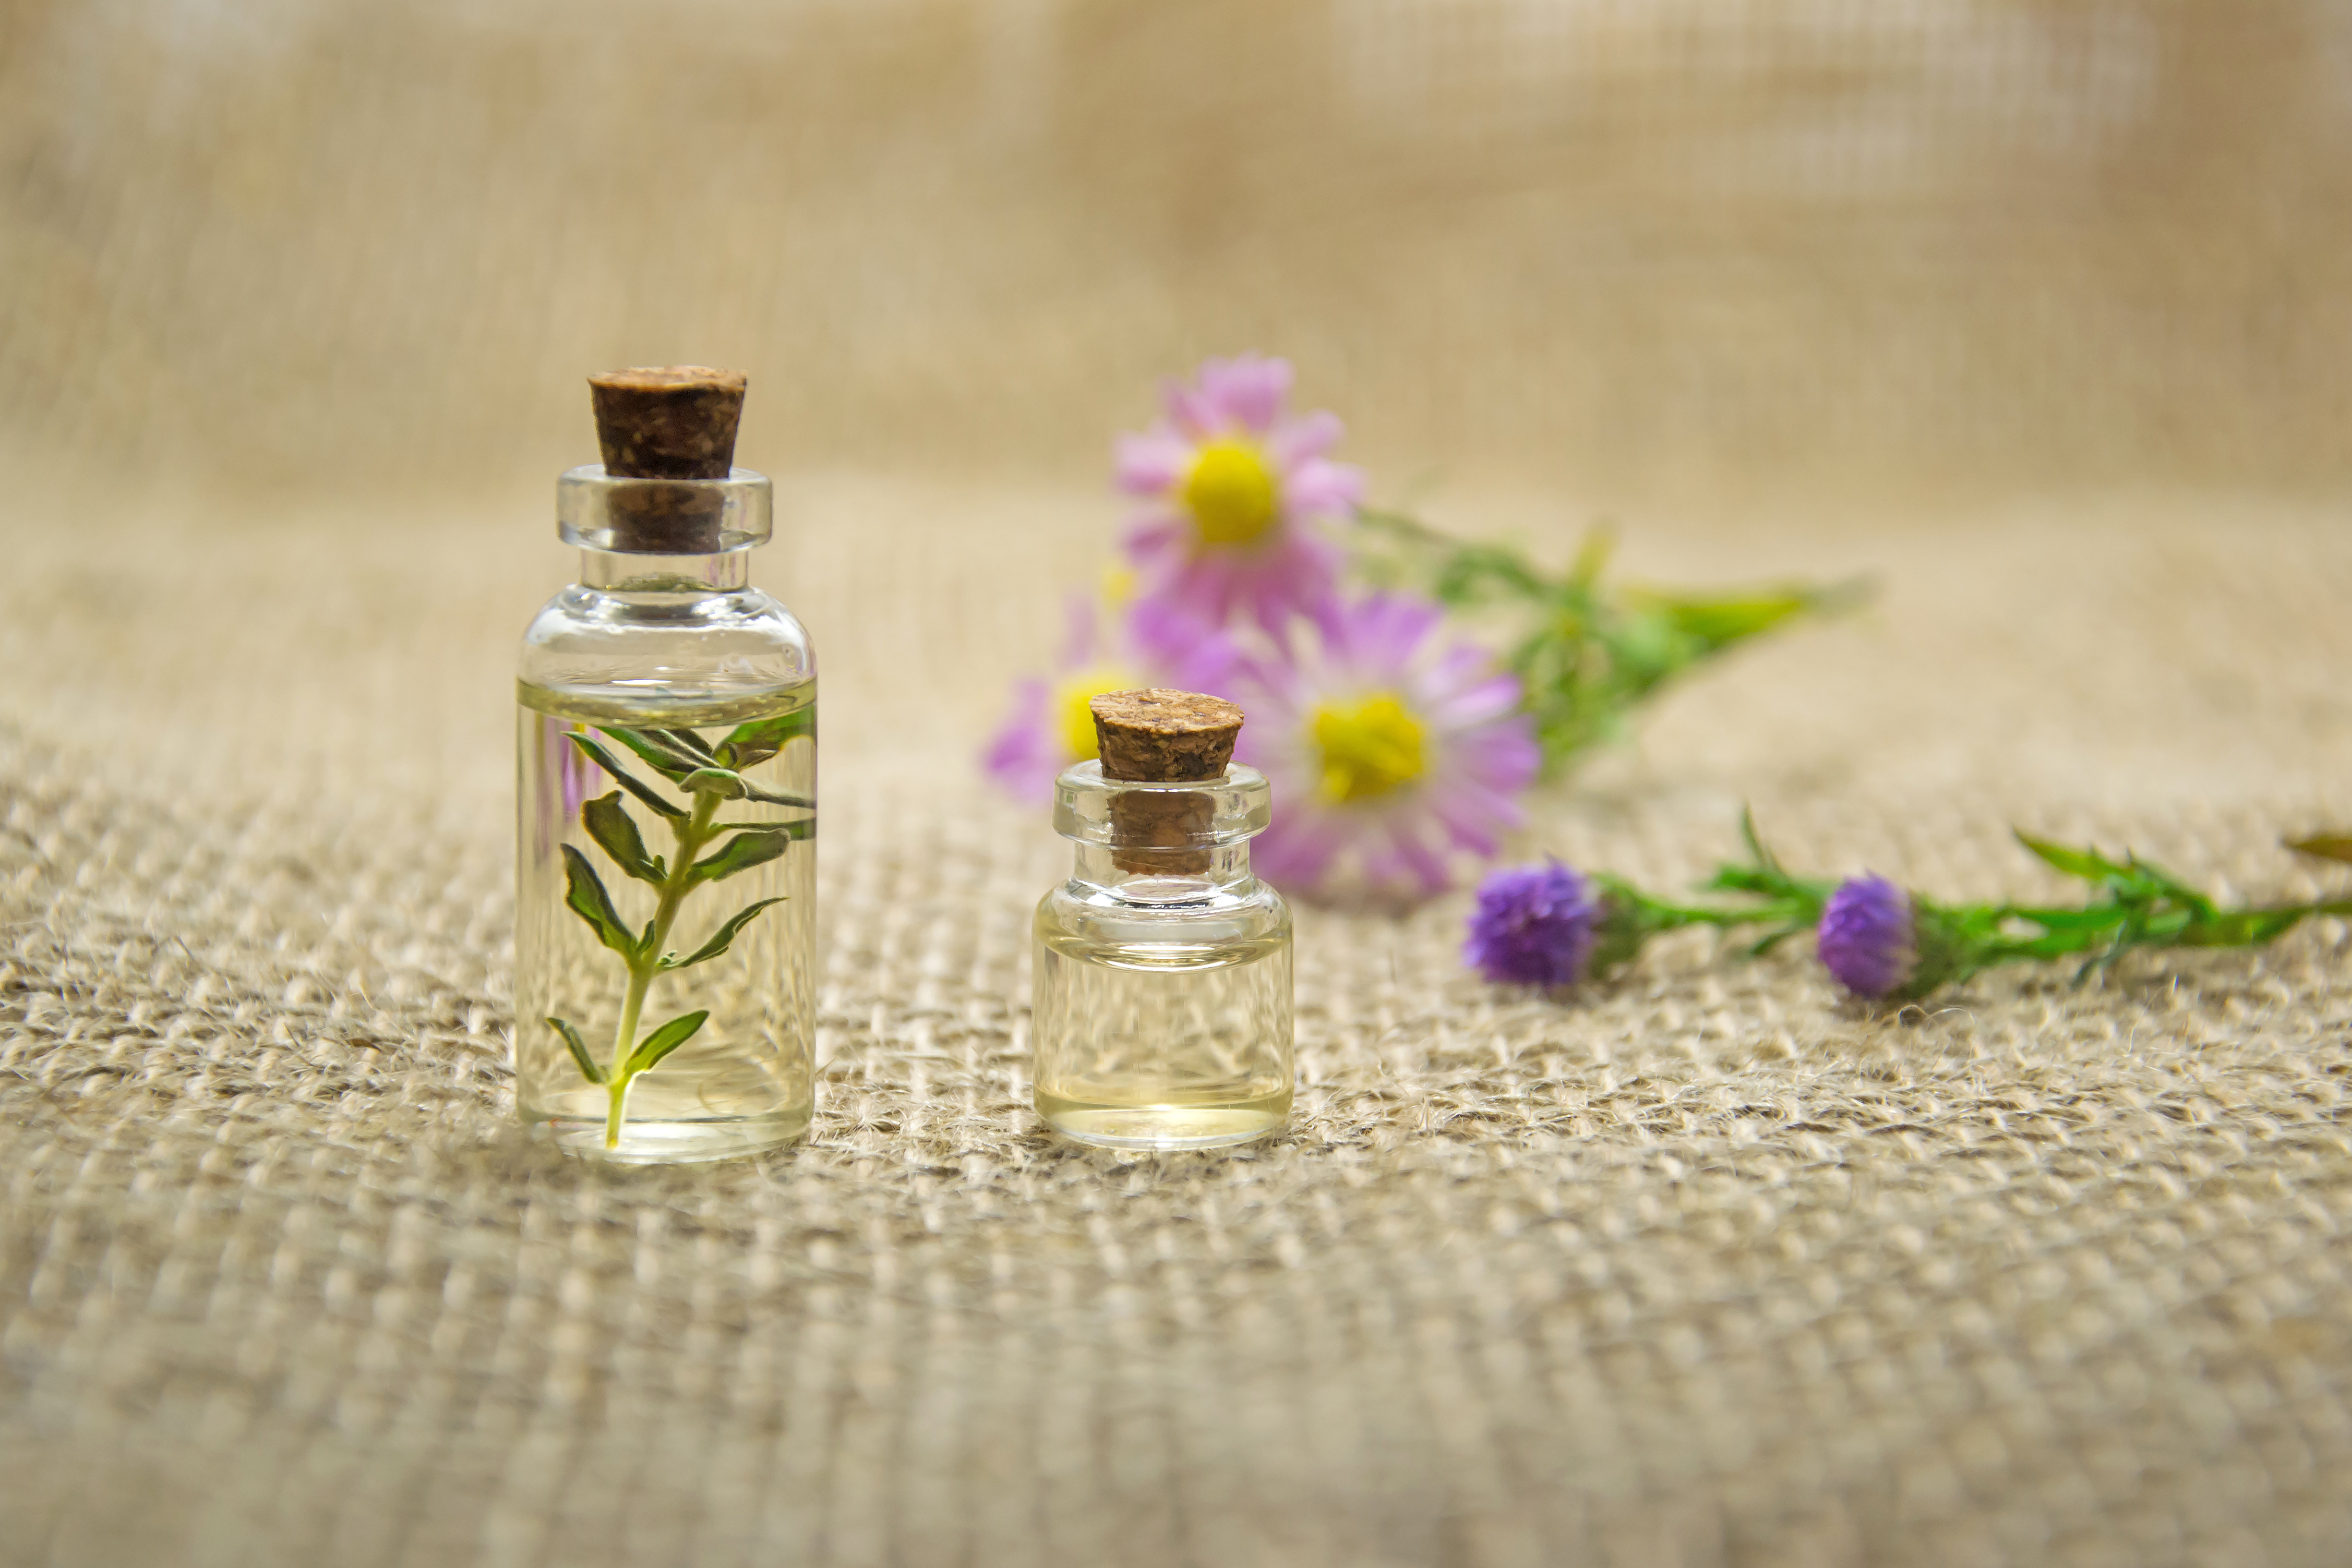 Thyme hair treatments have been prevalent throughout many societies for years. New research may help determine how thyme benefits hair health.